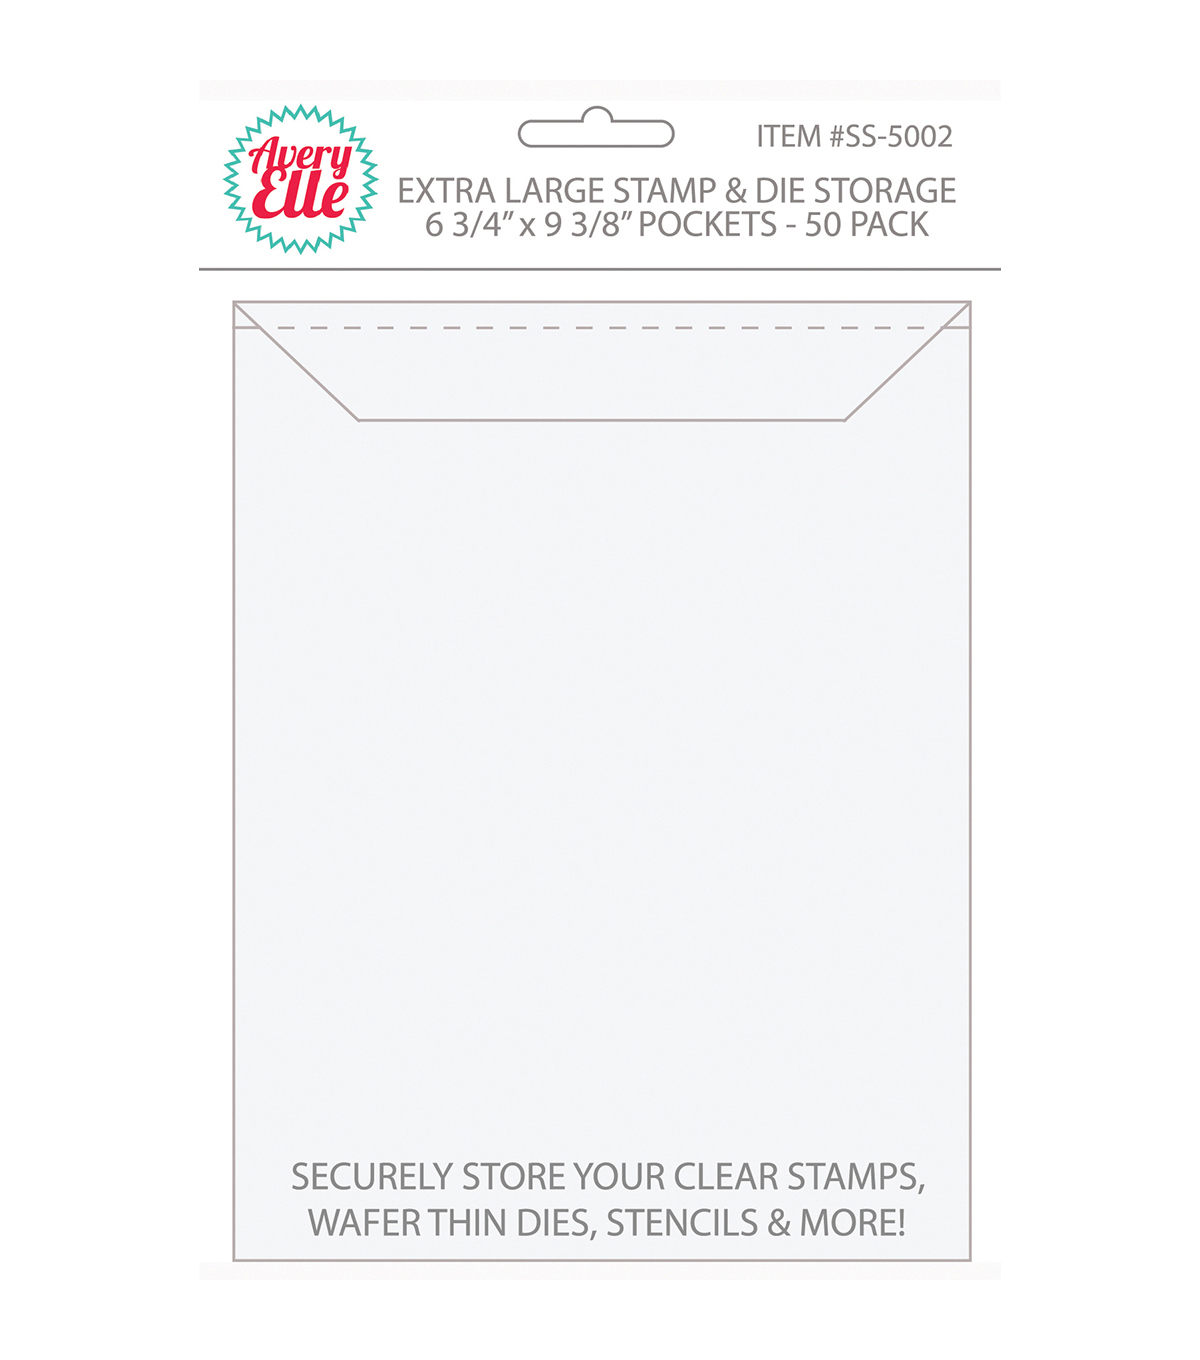 Avery Elle Stame & Die Extra Large Storage Pockets 50 Pack